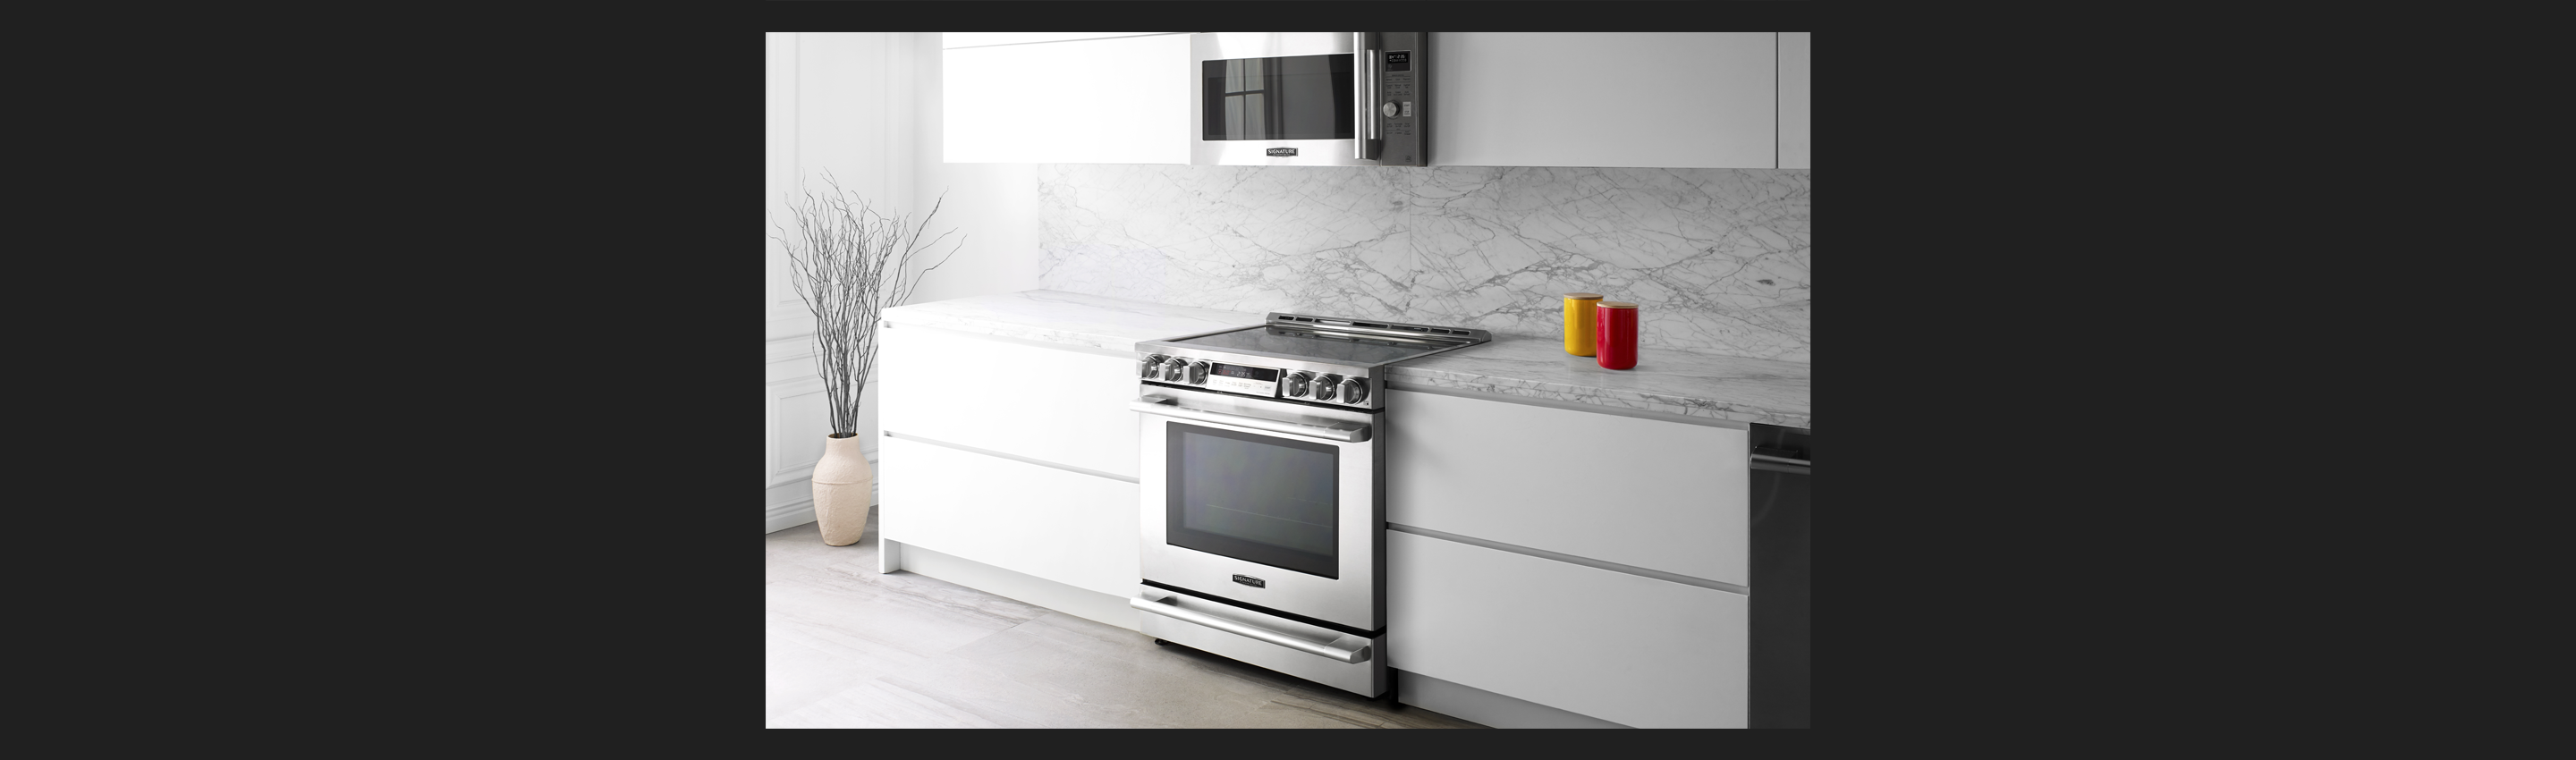 30-inch Electric Slide-in Oven Range | Signature Kitchen Suite